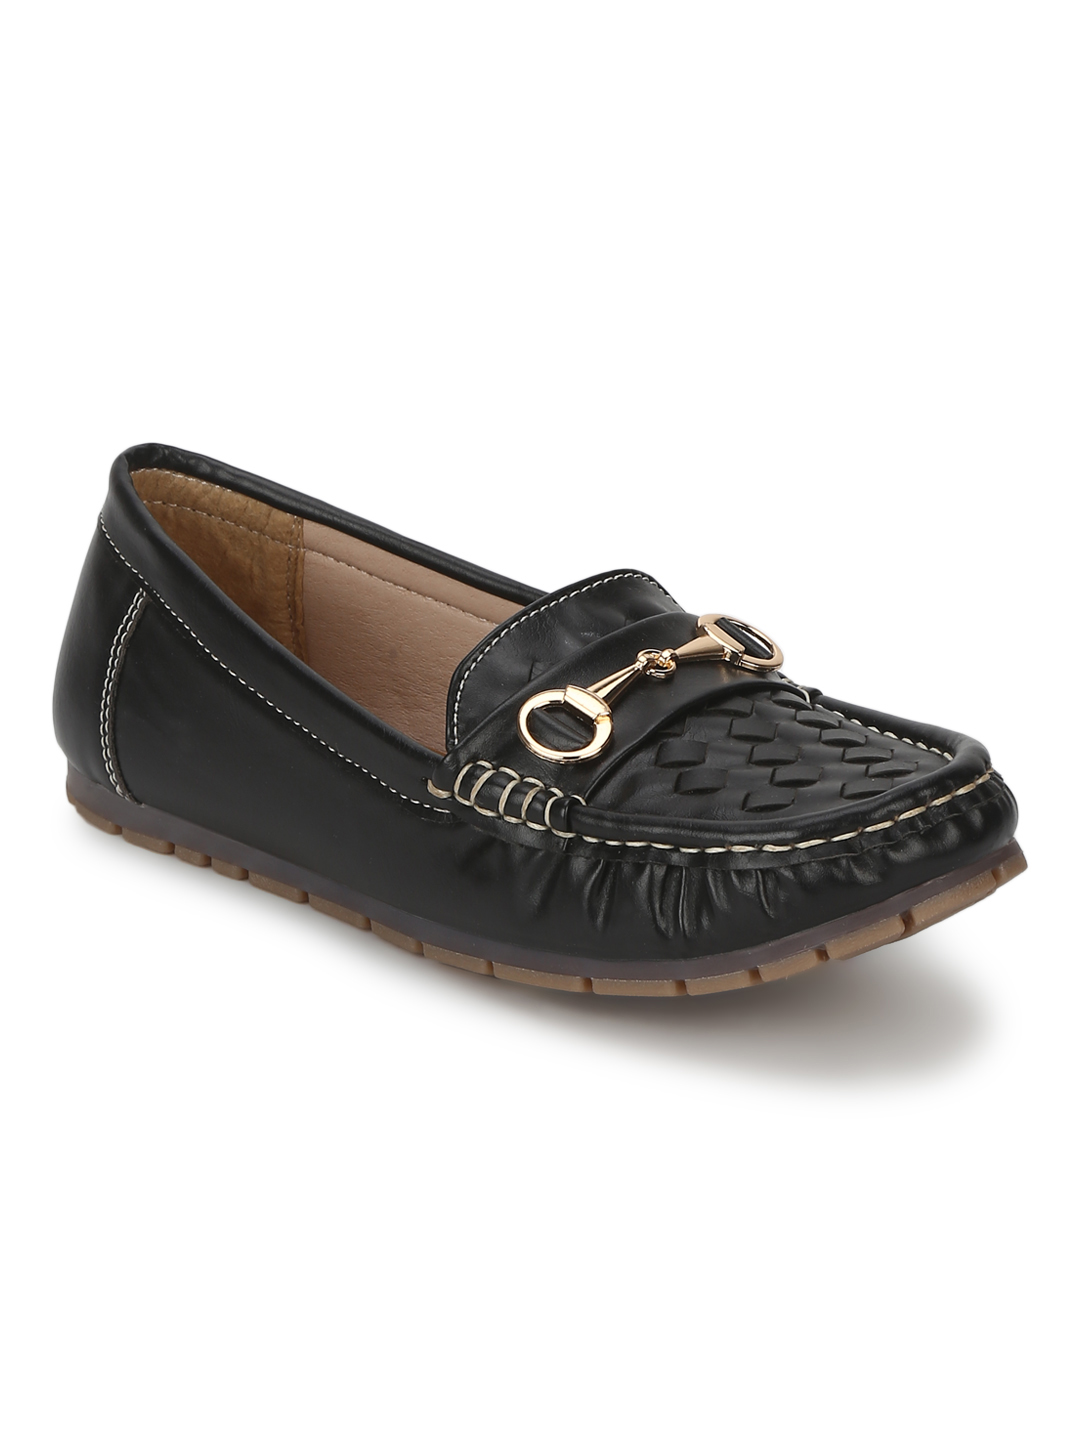 Truffle Collection   Black PU Gold Chain Loafer With Weaves